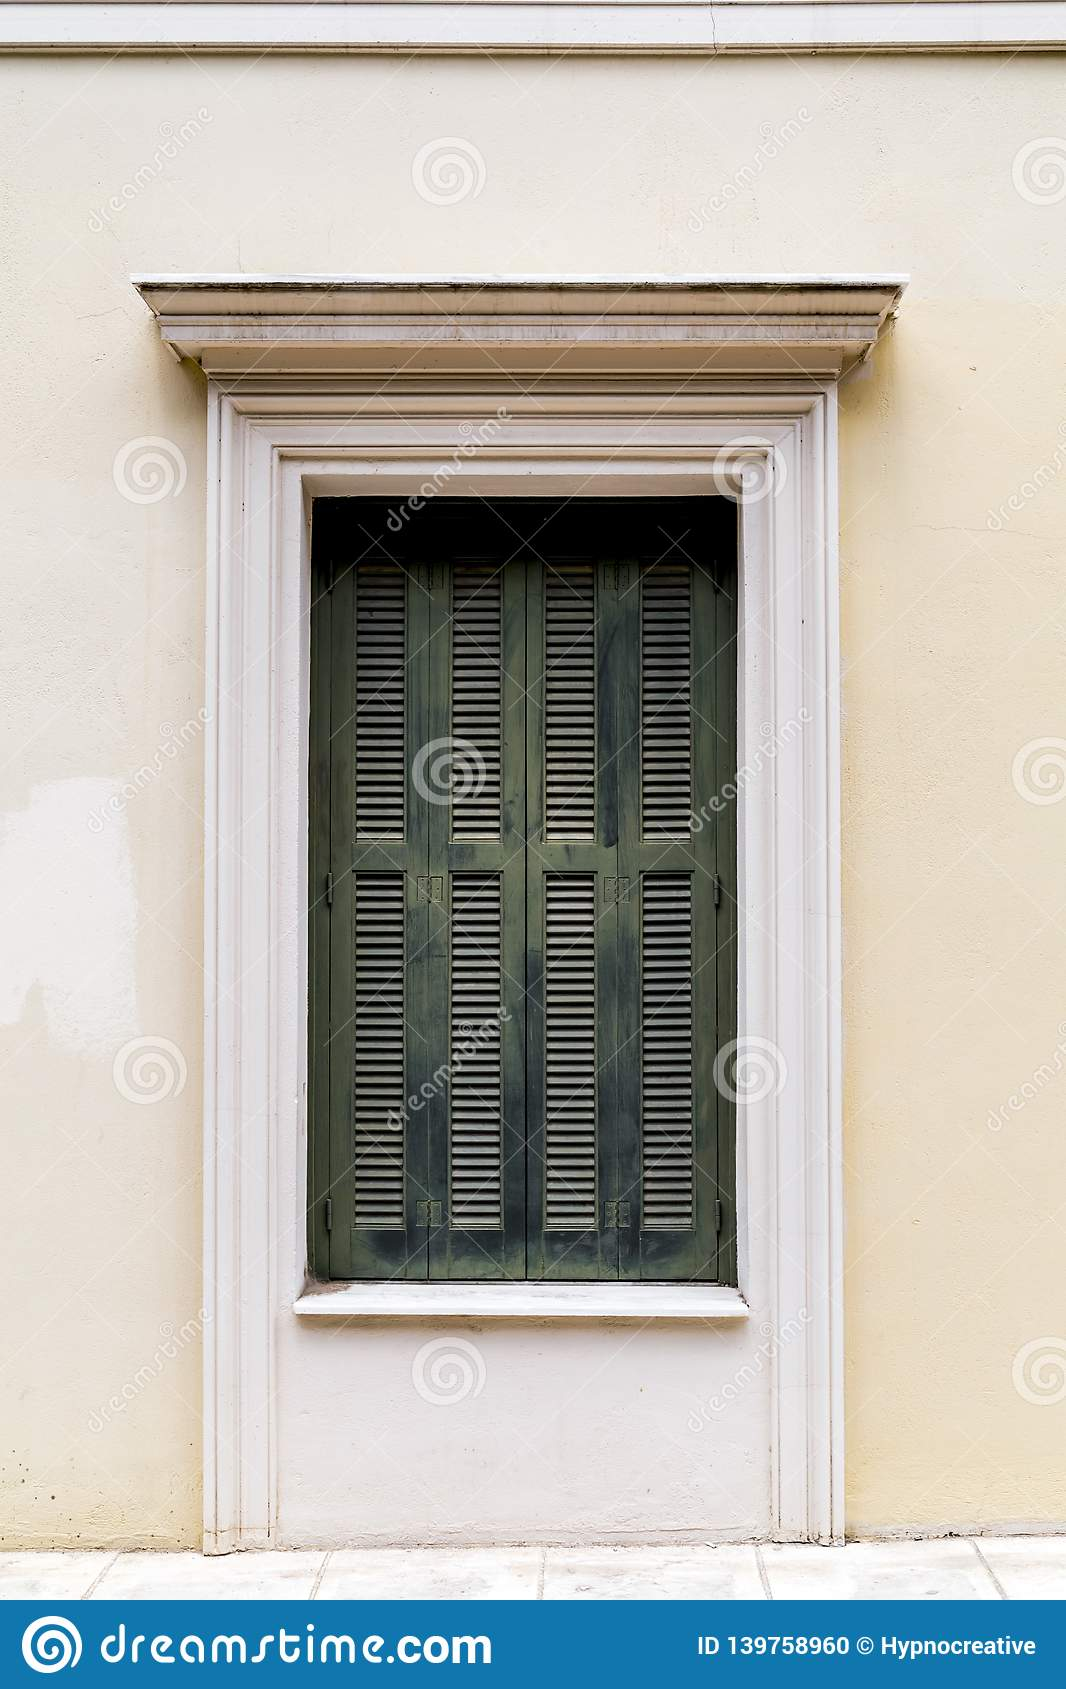 Windows with green wooden shutters stock photo